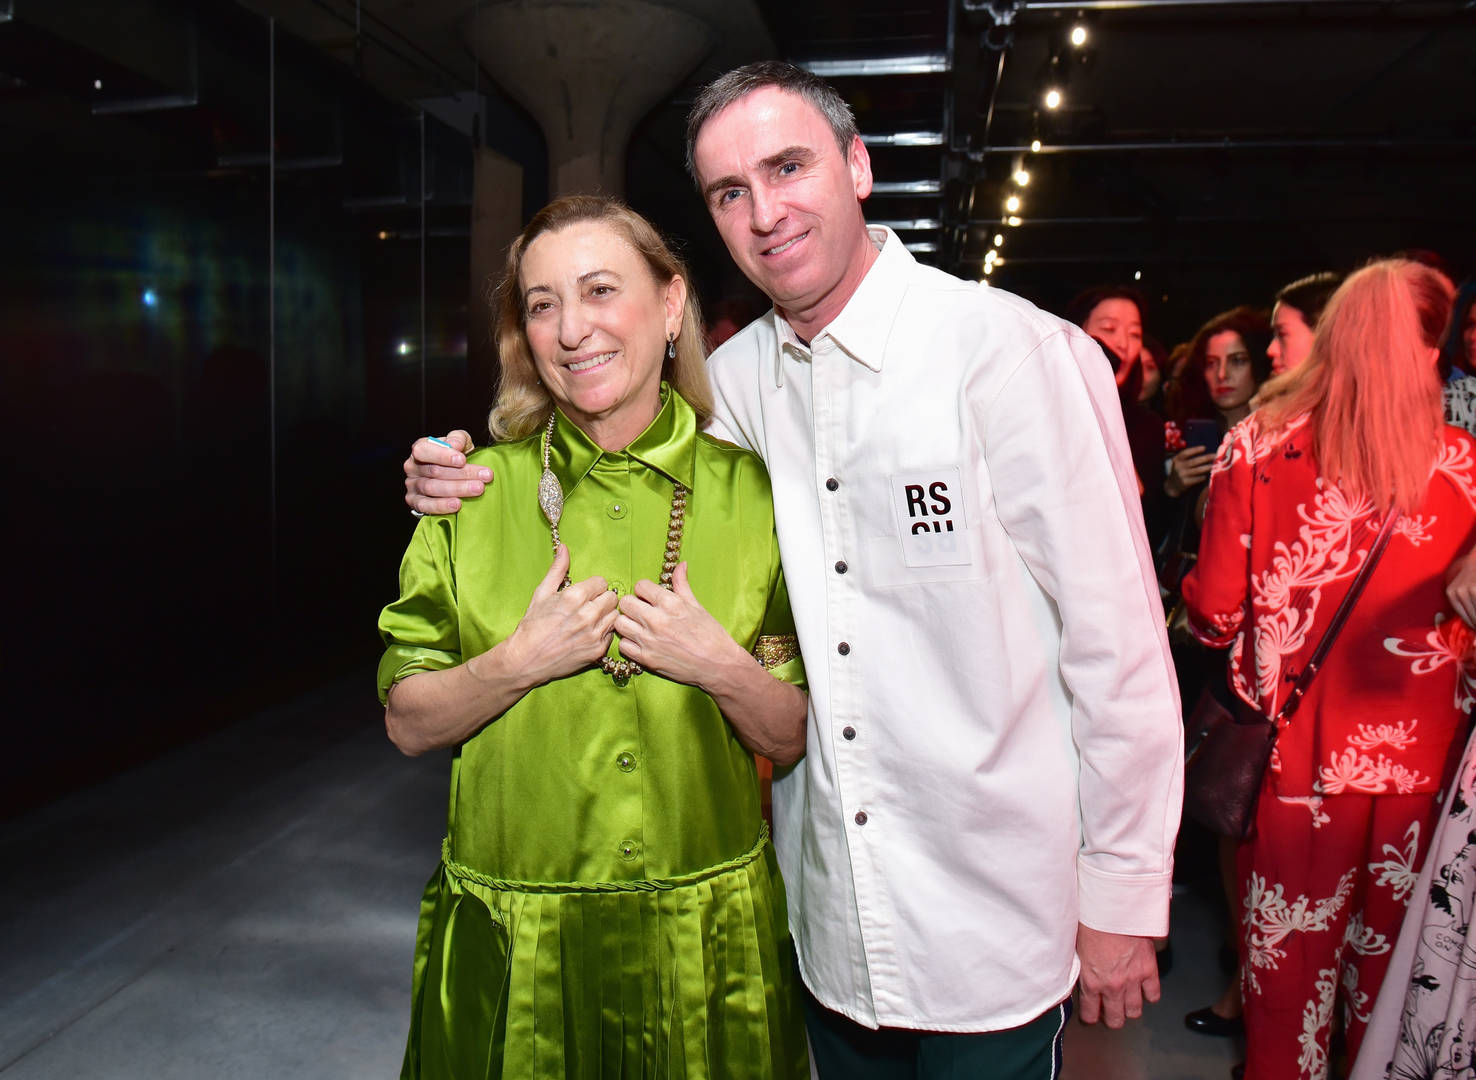 Raf simons, Miucci Prada, Co-creative director